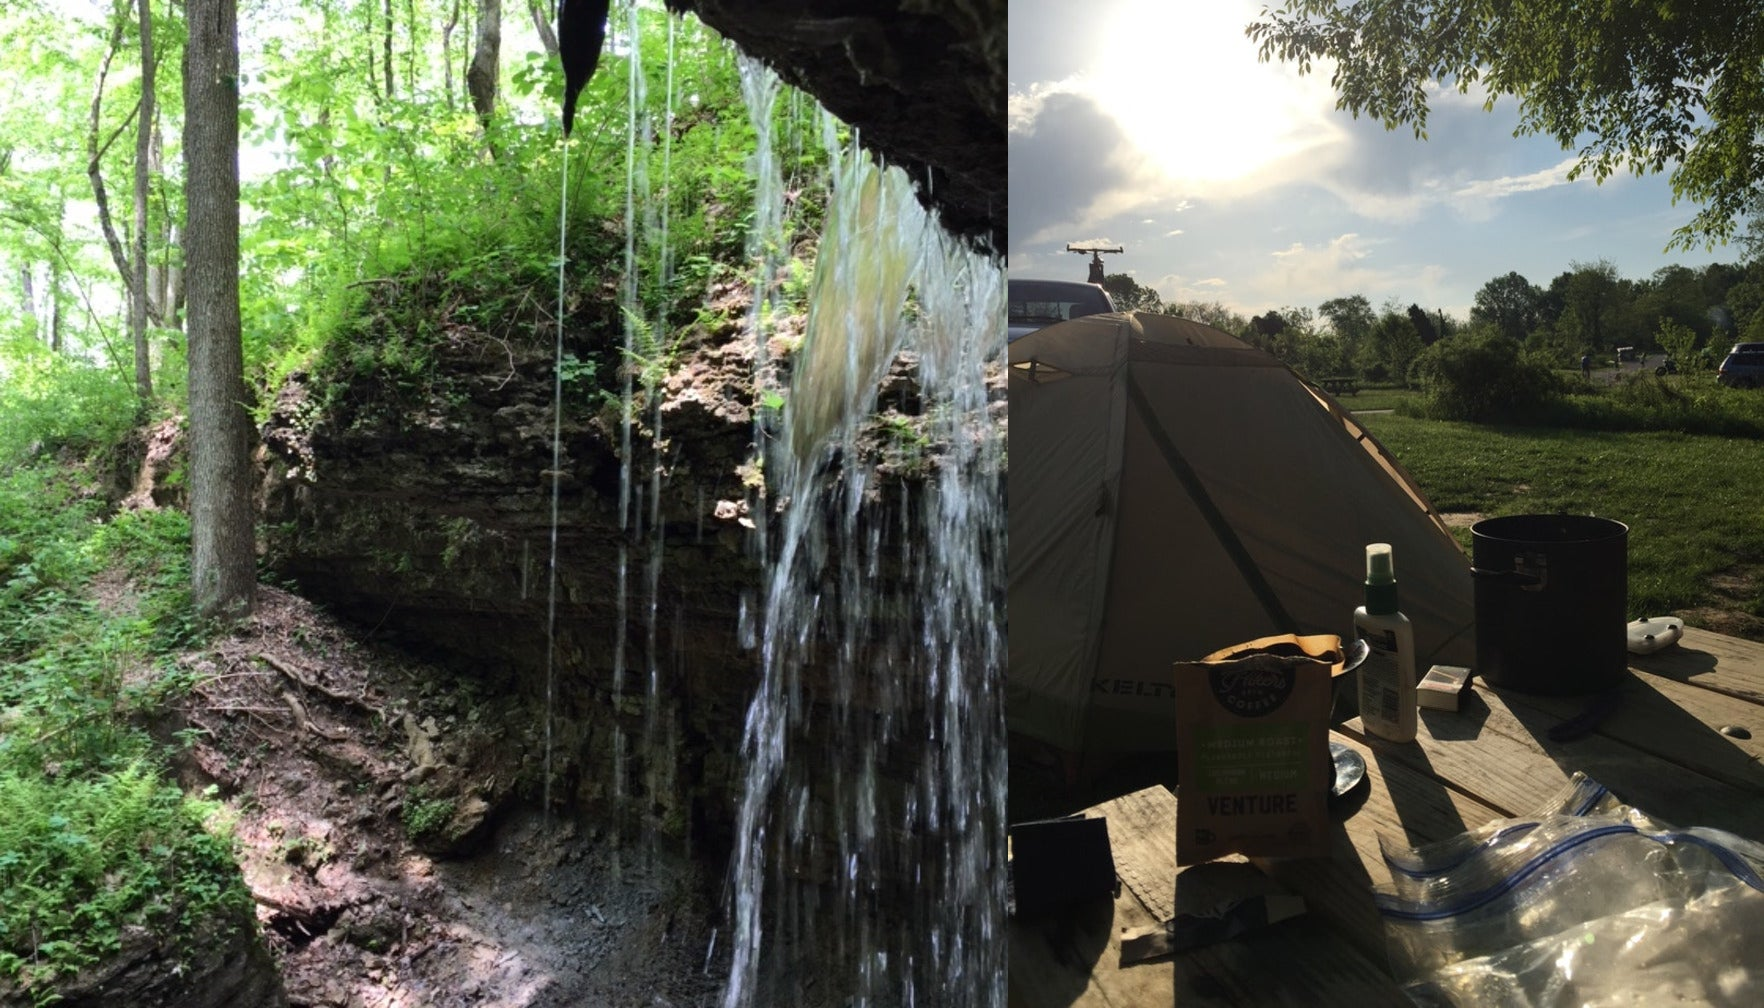 image of a waterfall beside image of local campsite at sunset at clifty falls state park